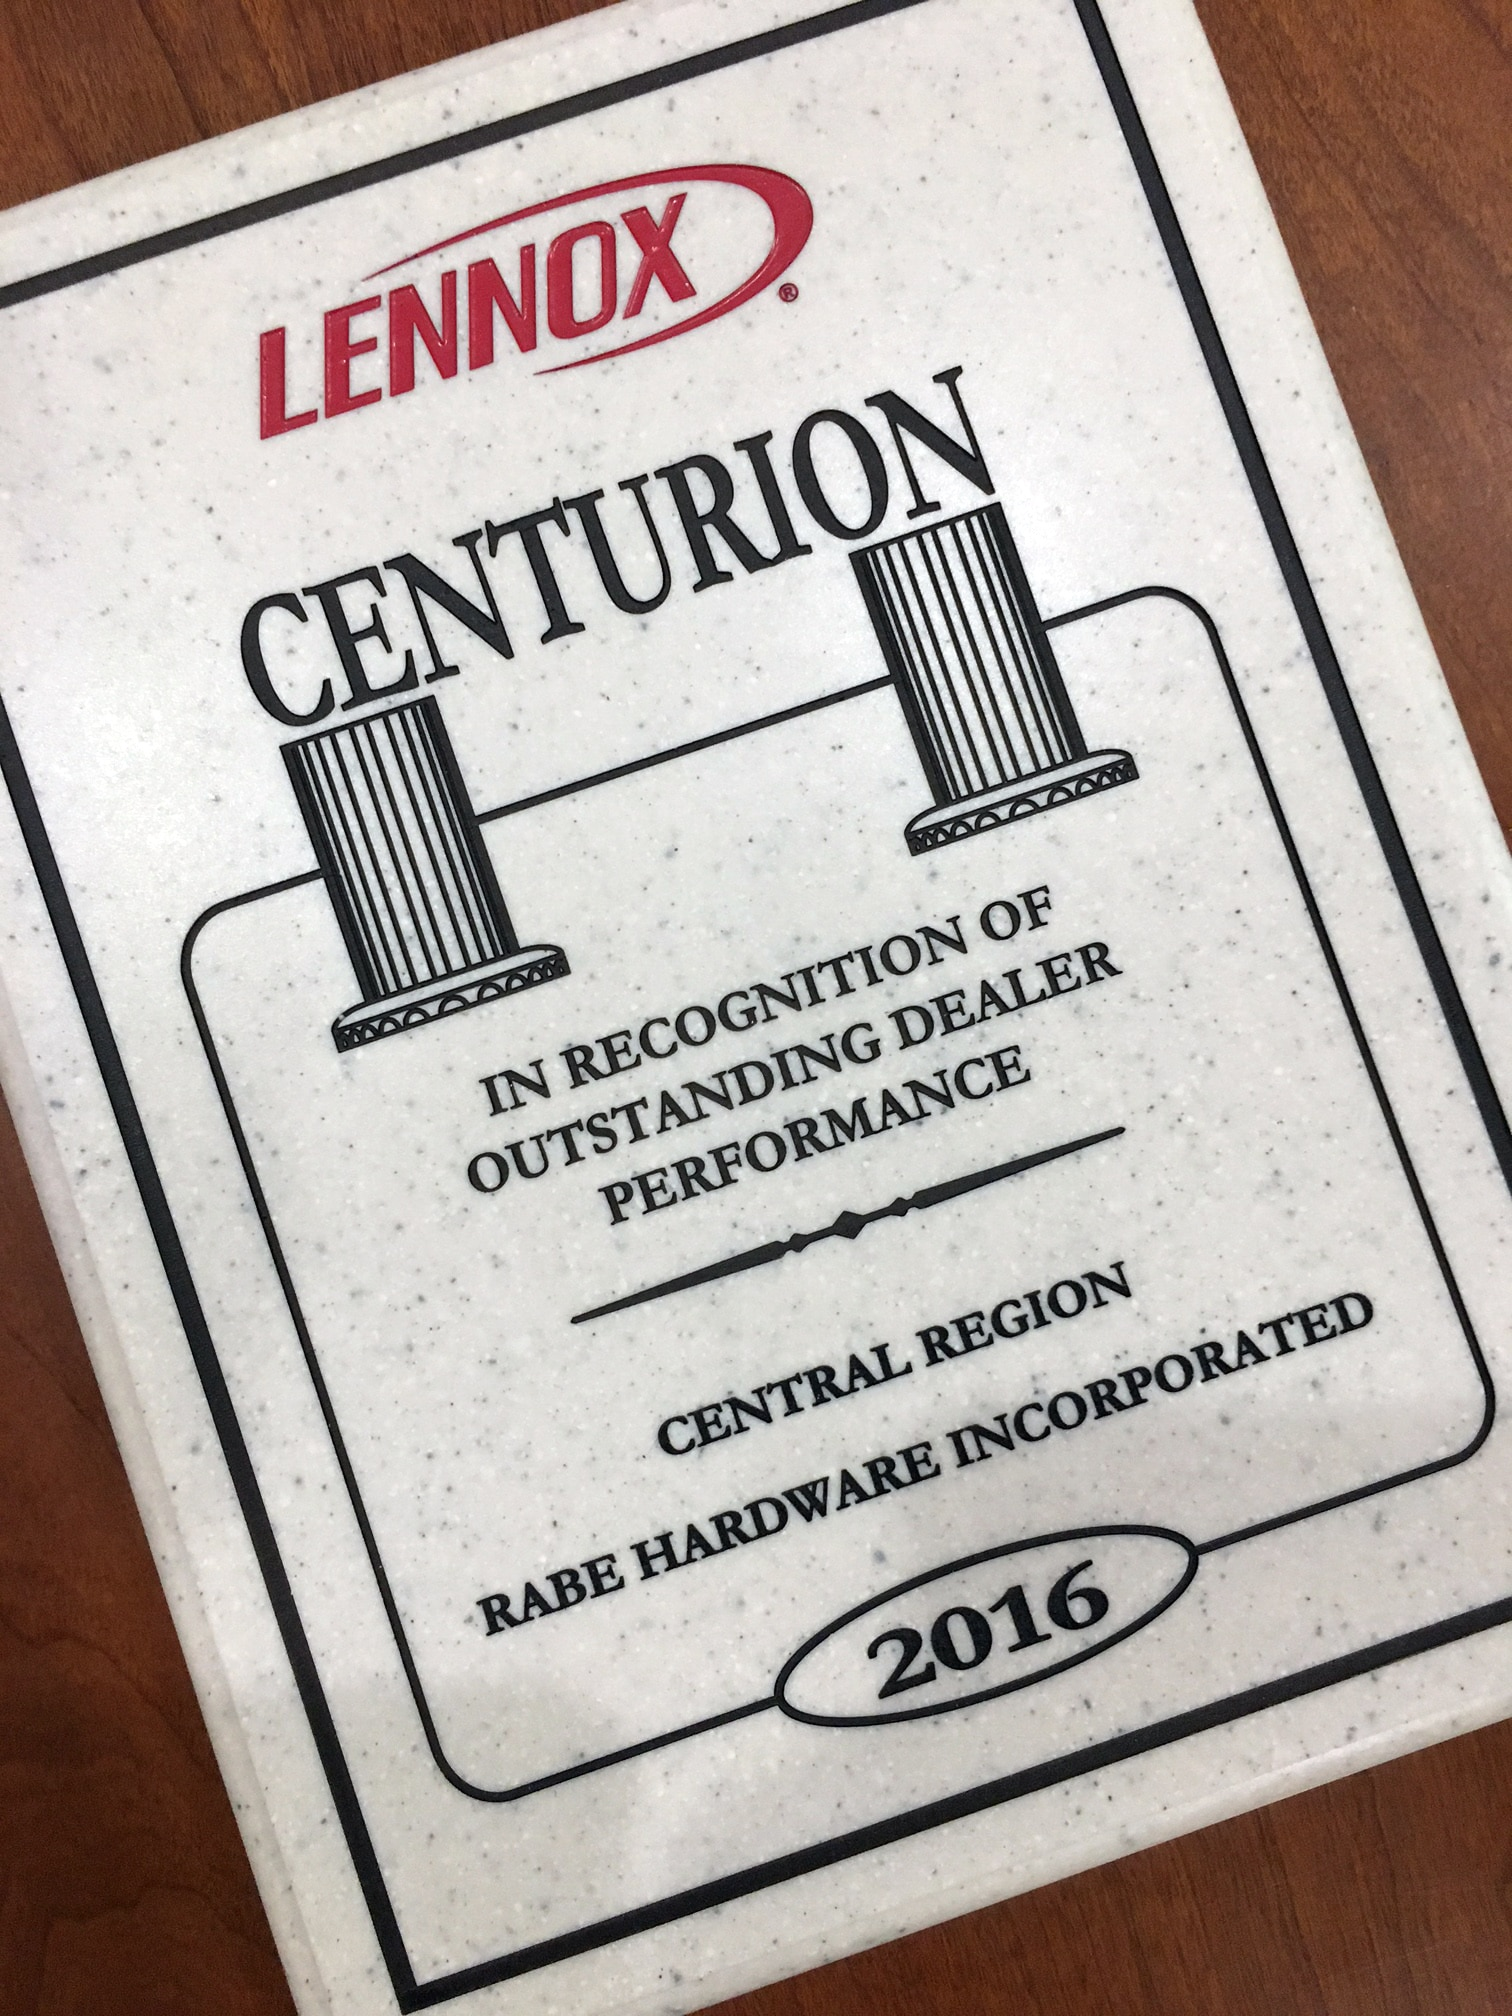 Exciting News from Lennox